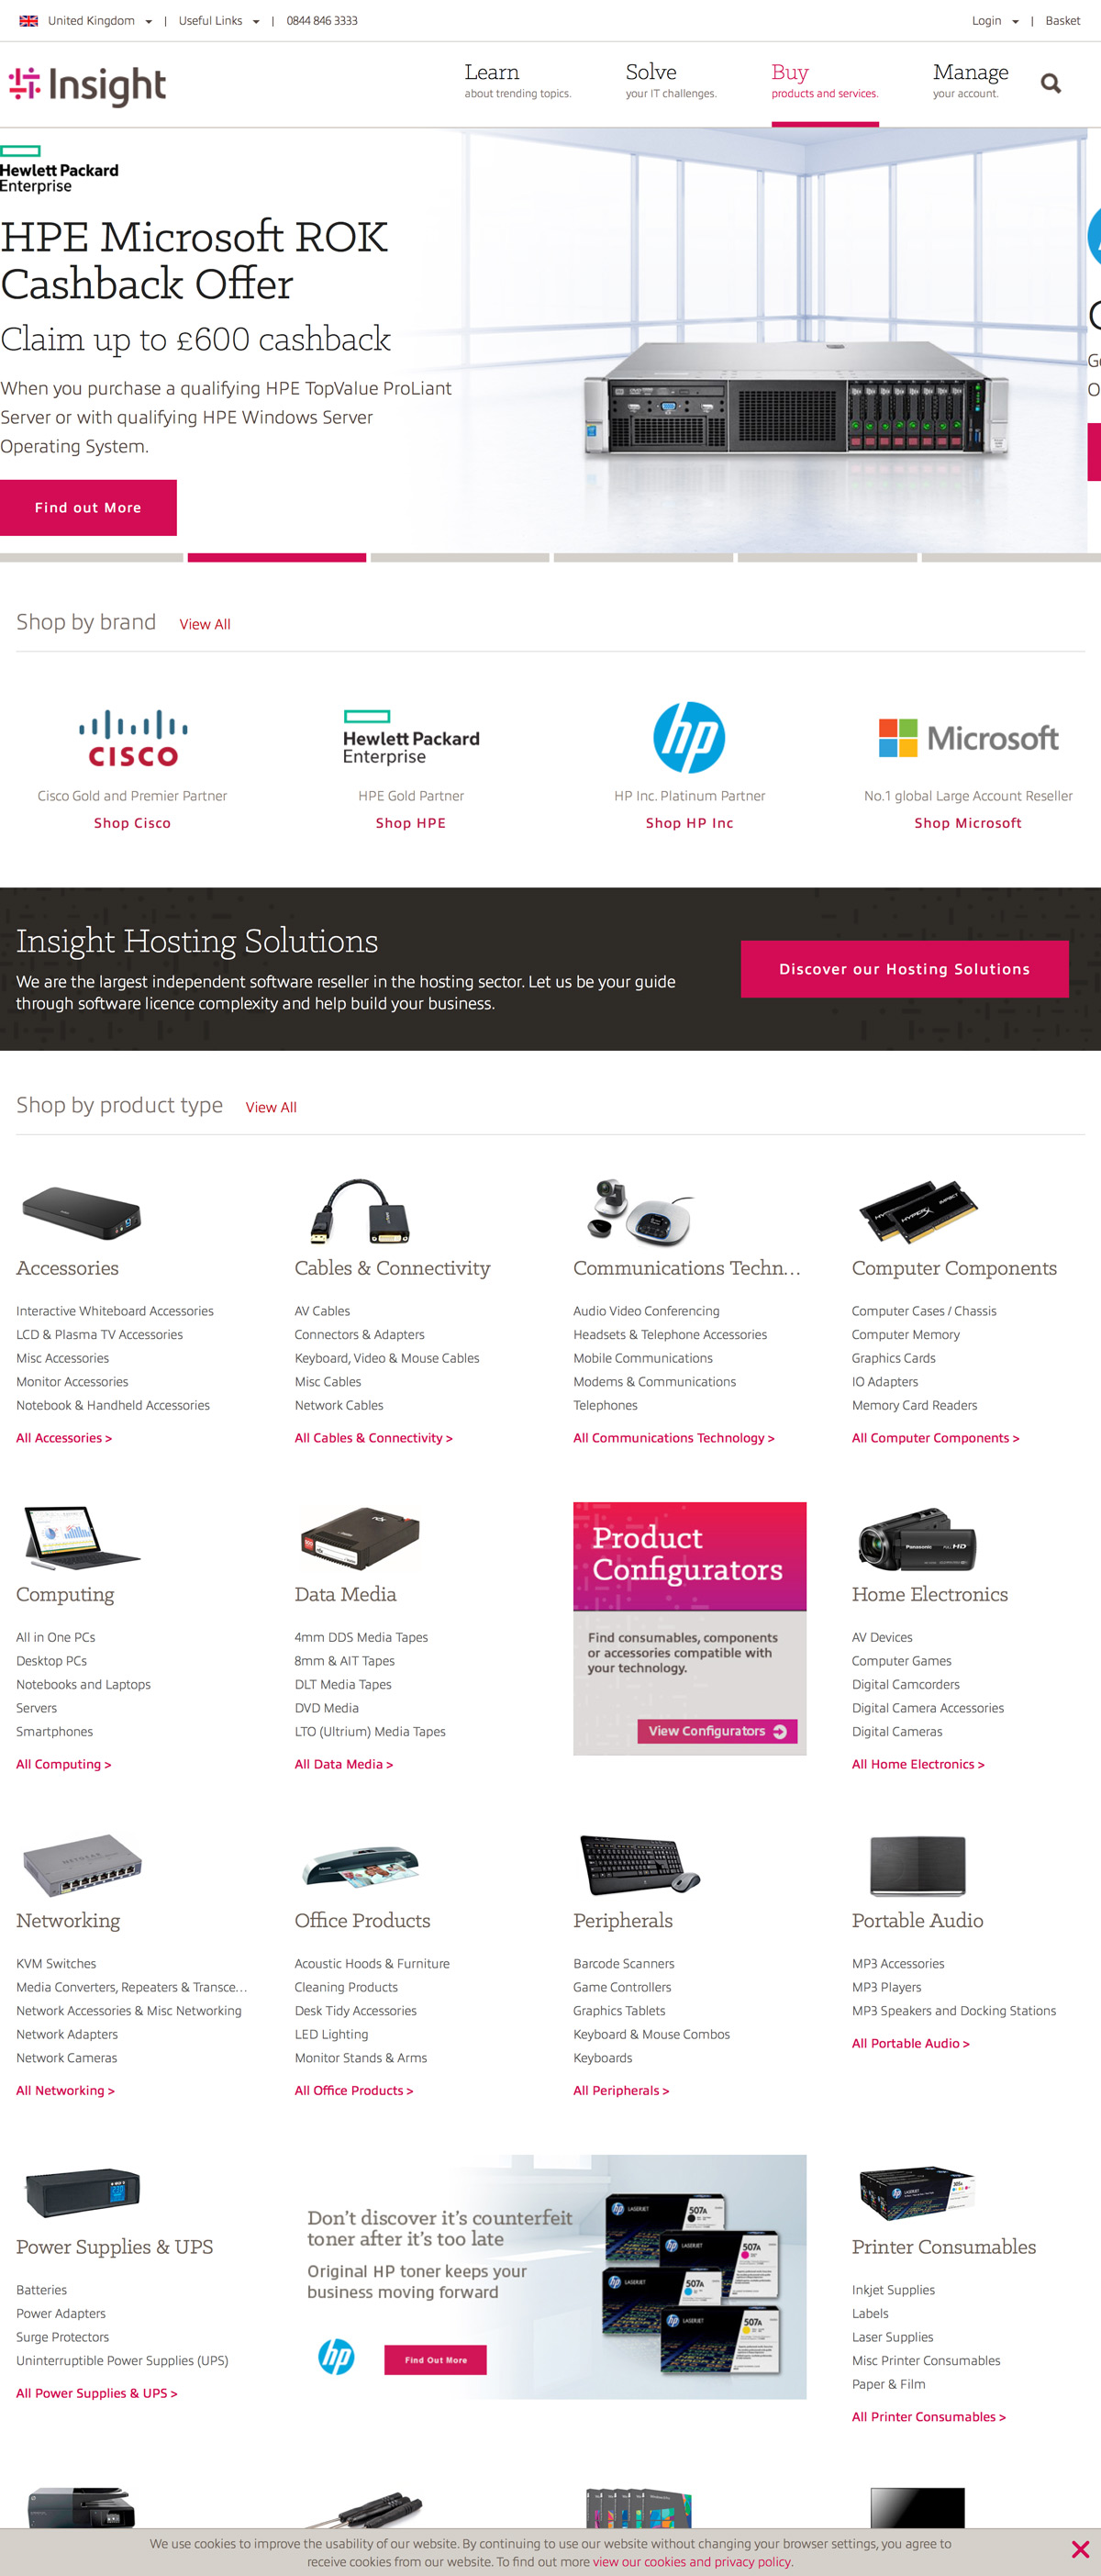 eCommerce website: Insight